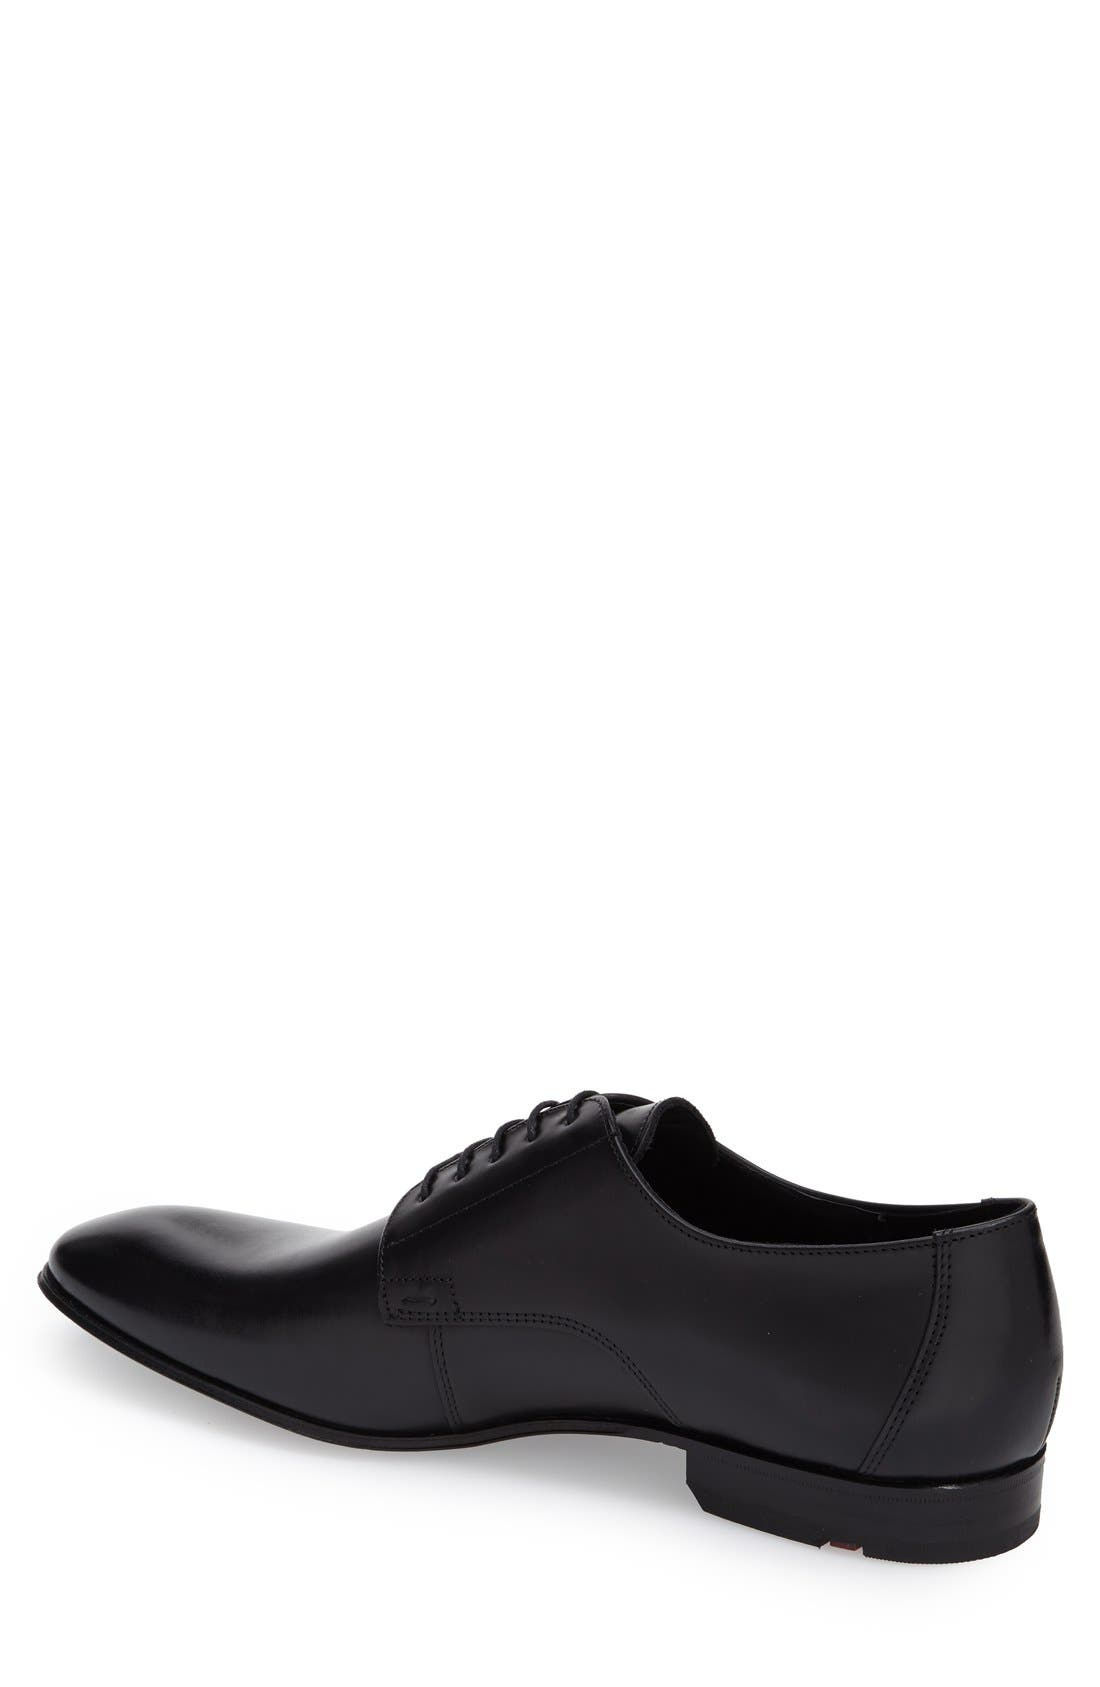 'Laurin' Plain Toe Derby,                             Alternate thumbnail 2, color,                             Black